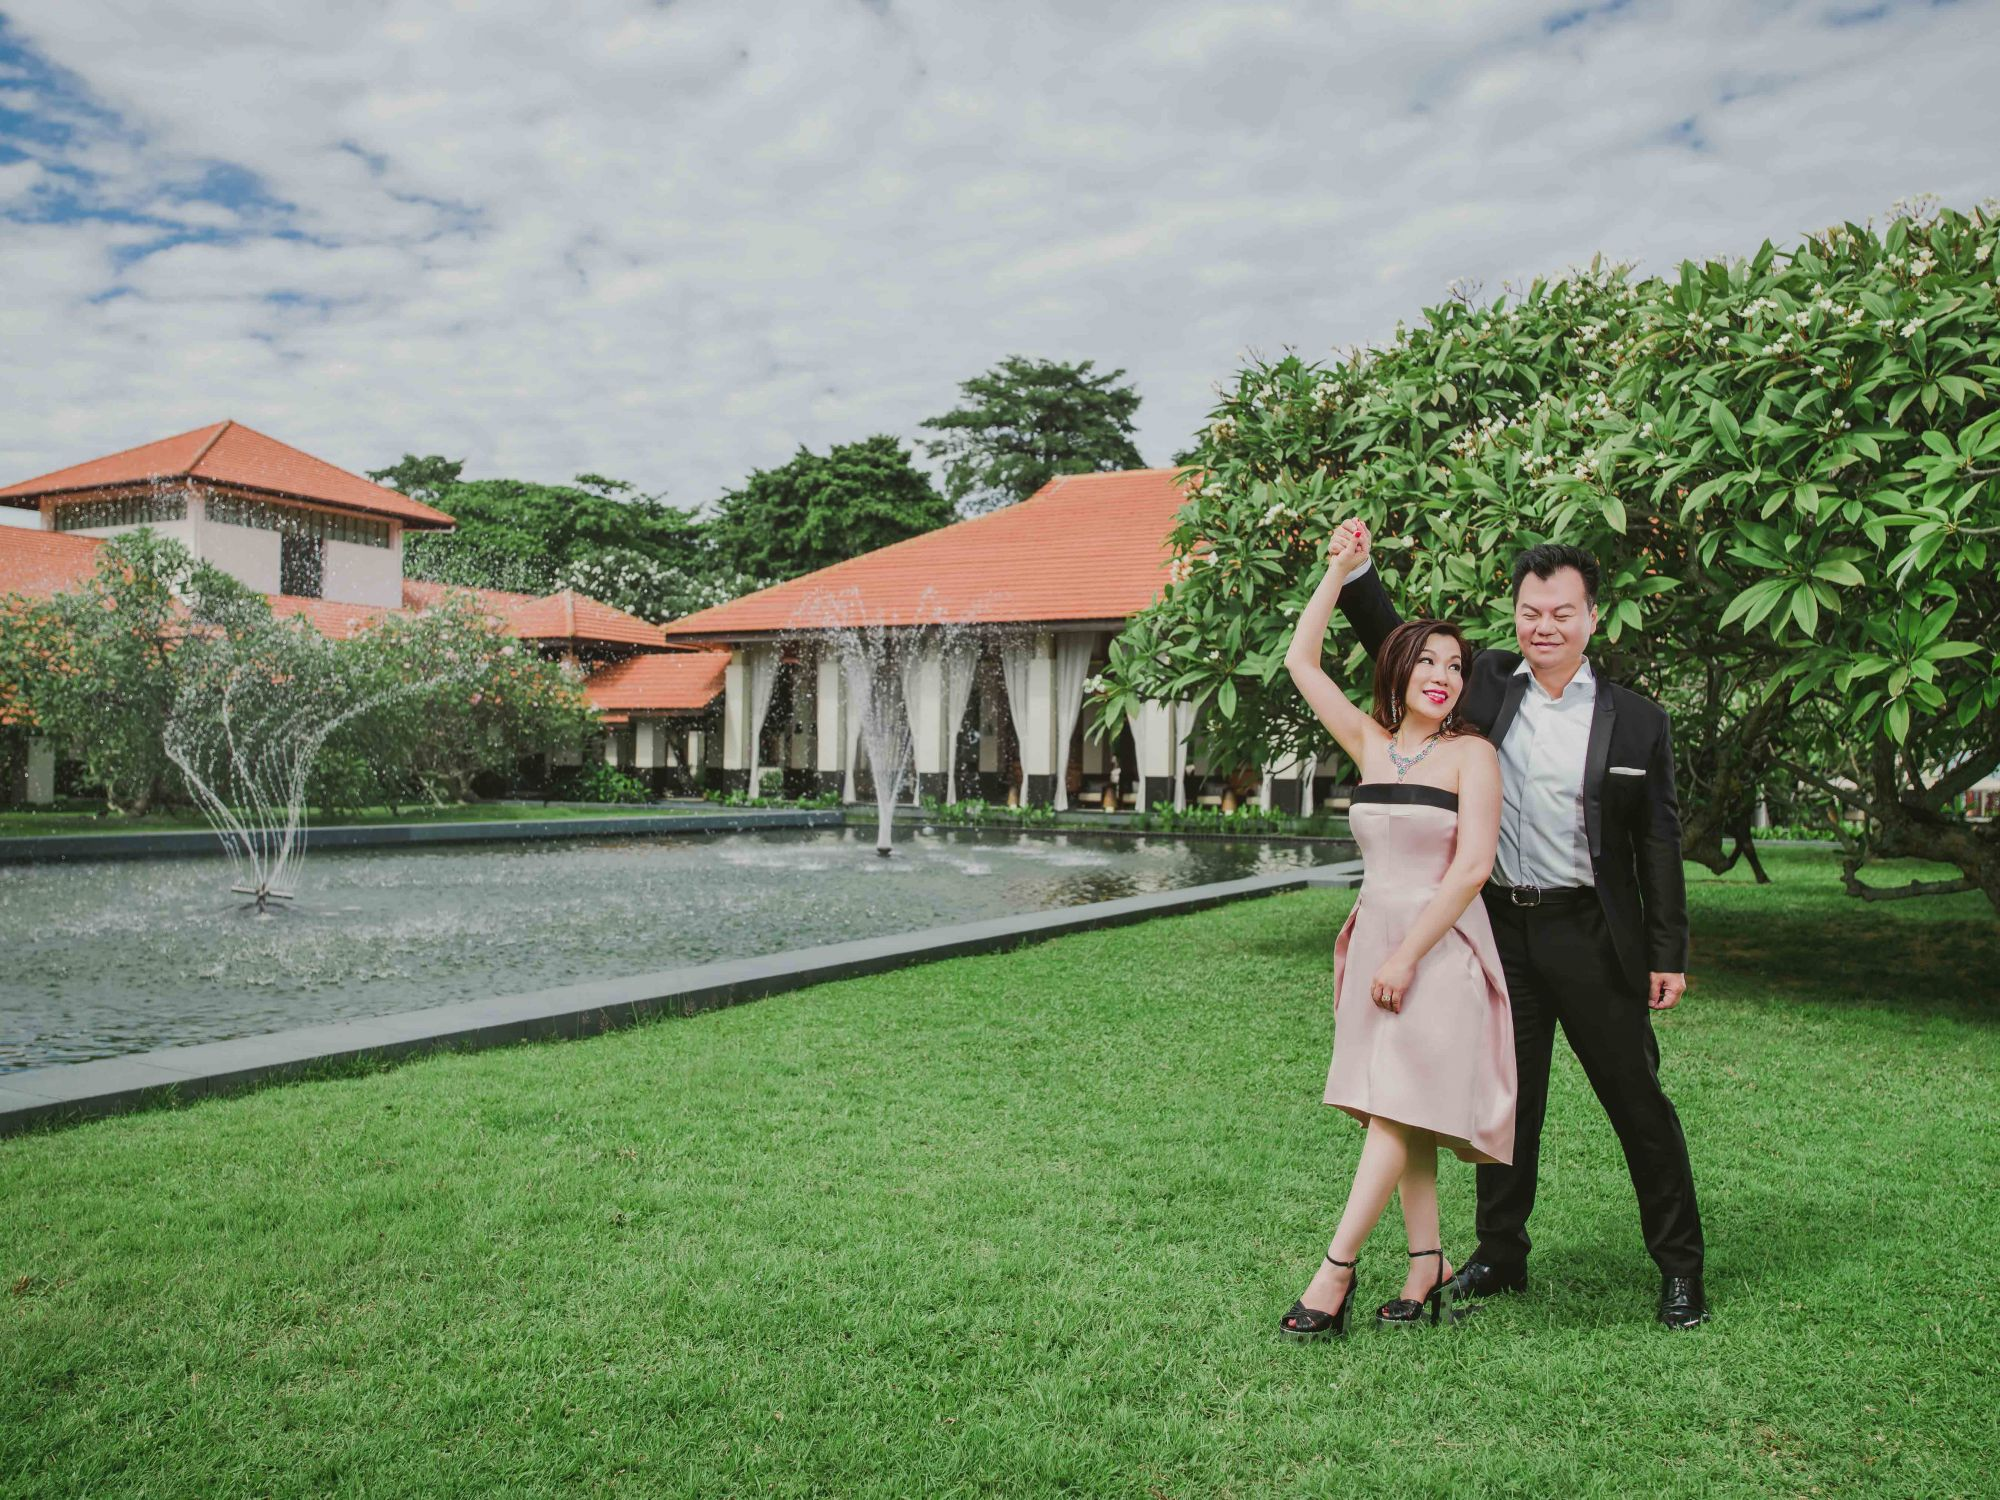 Adrian Peh: How I Popped The Question